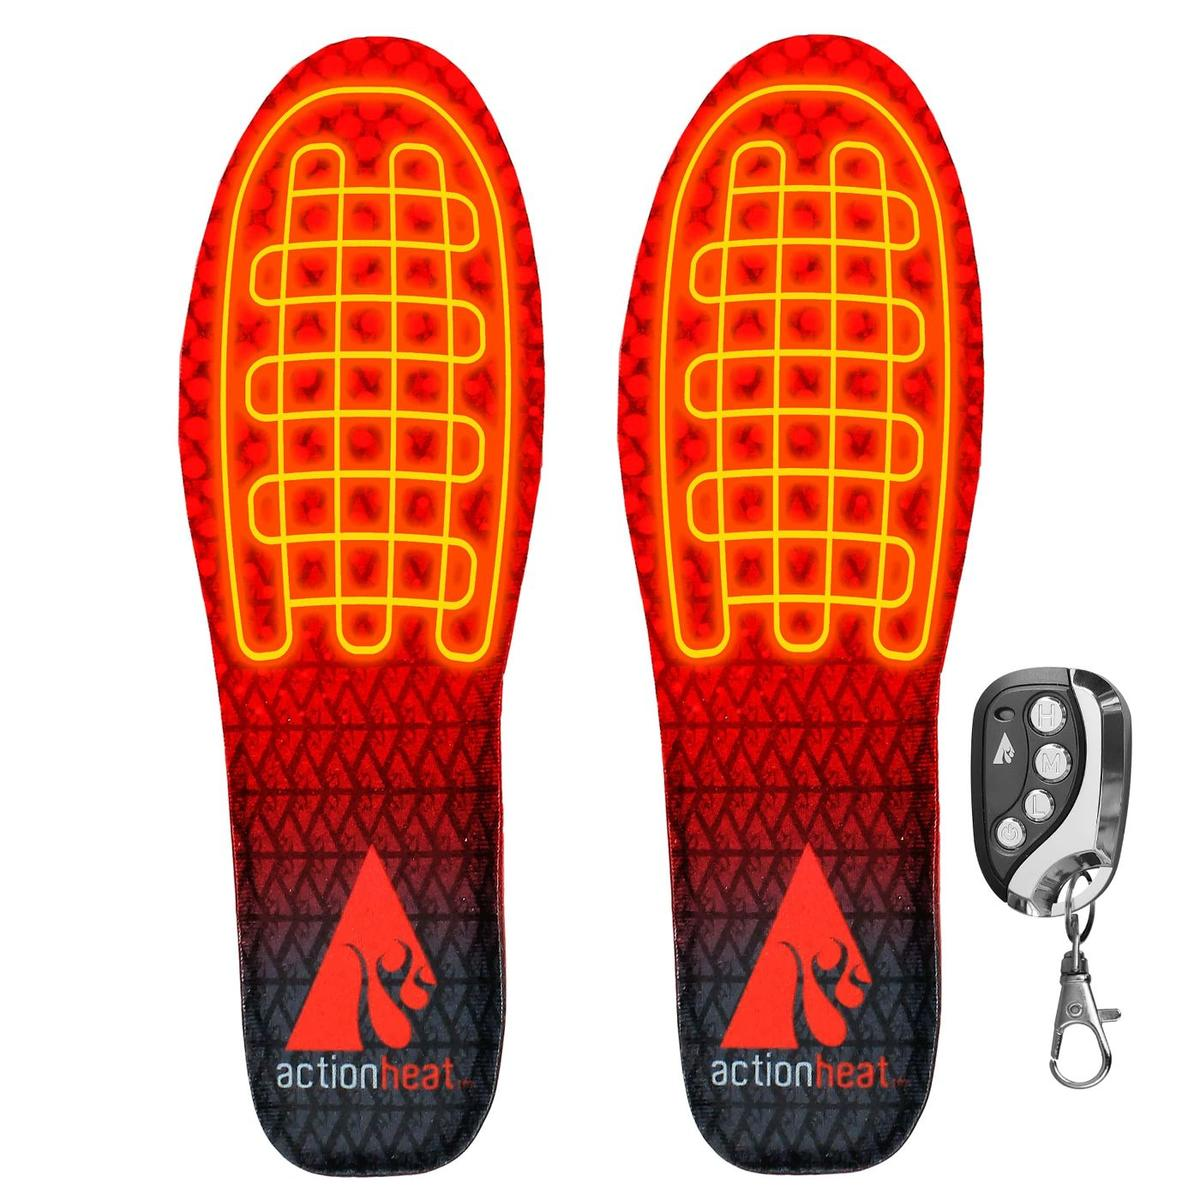 ActionHeat Rechargeable Heated Insoles with Remote - Front